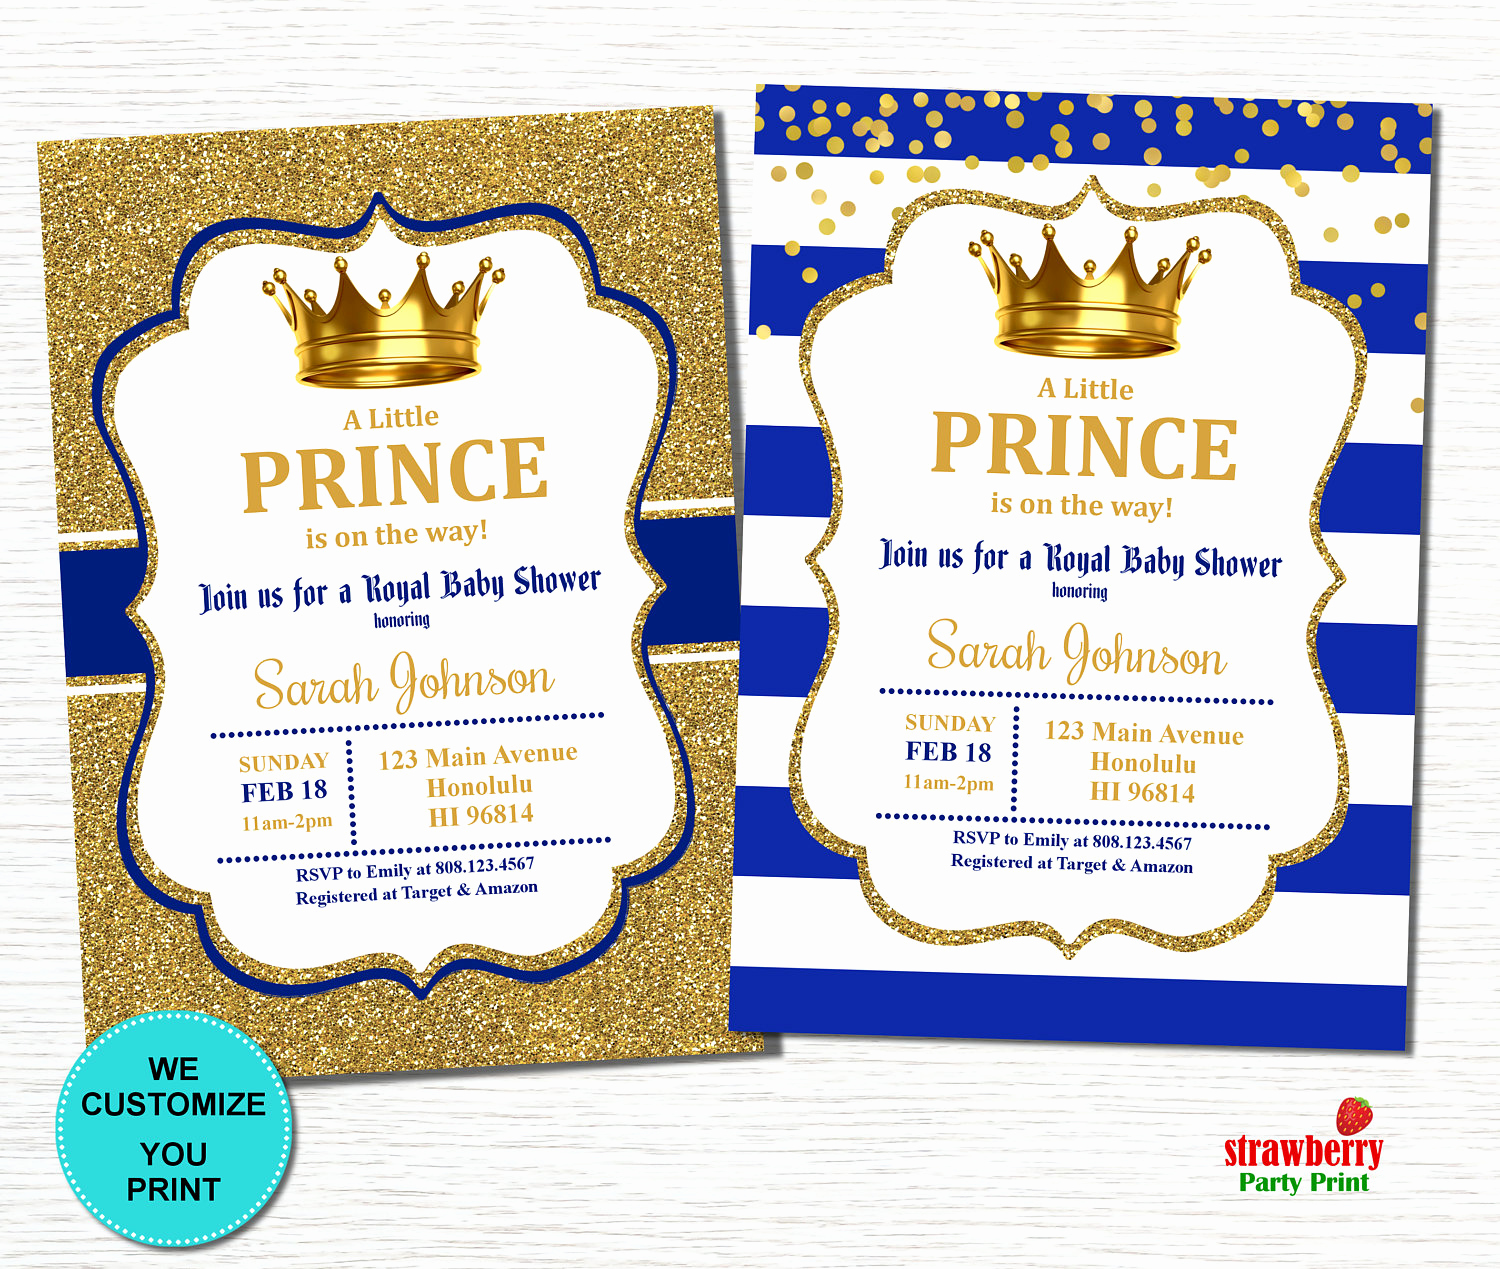 Royal Baby Shower Invitation Unique Prince Baby Shower Invitation Royal Baby Shower Invitation